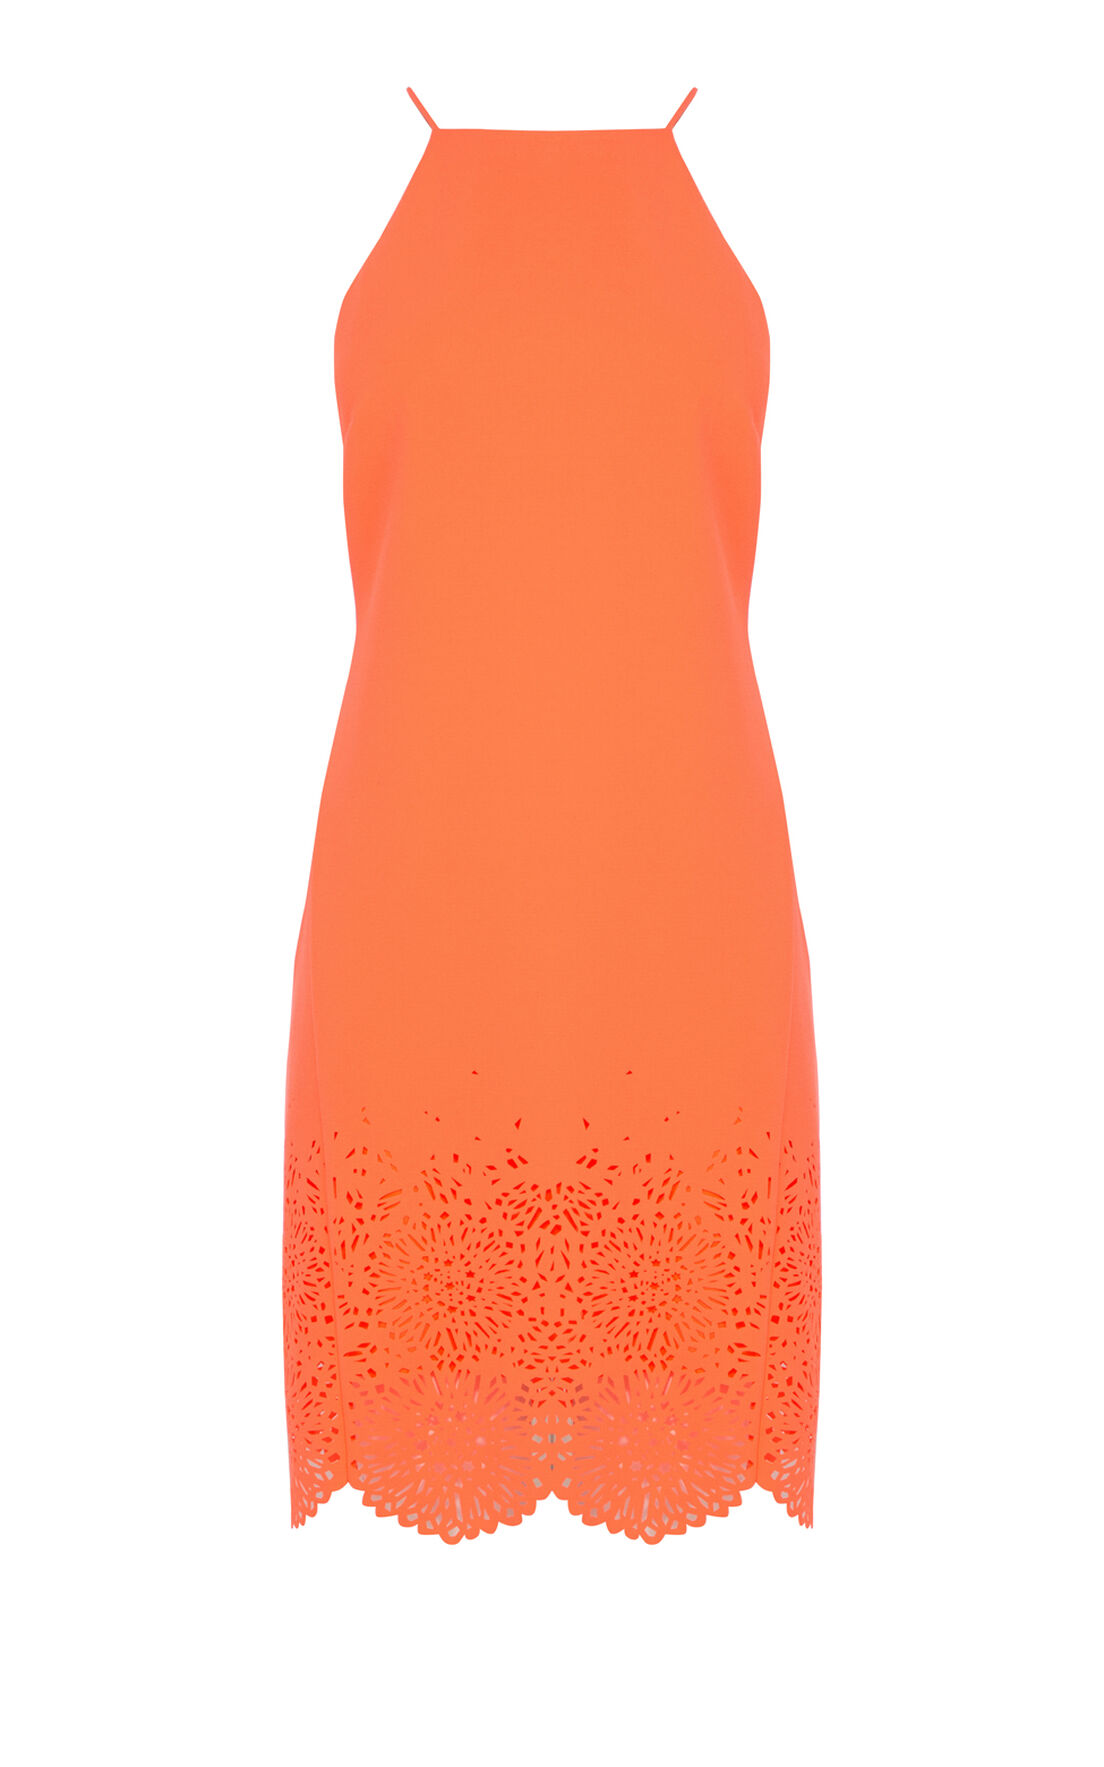 Karen Millen, Laser cut neon crepe dress Coral 0